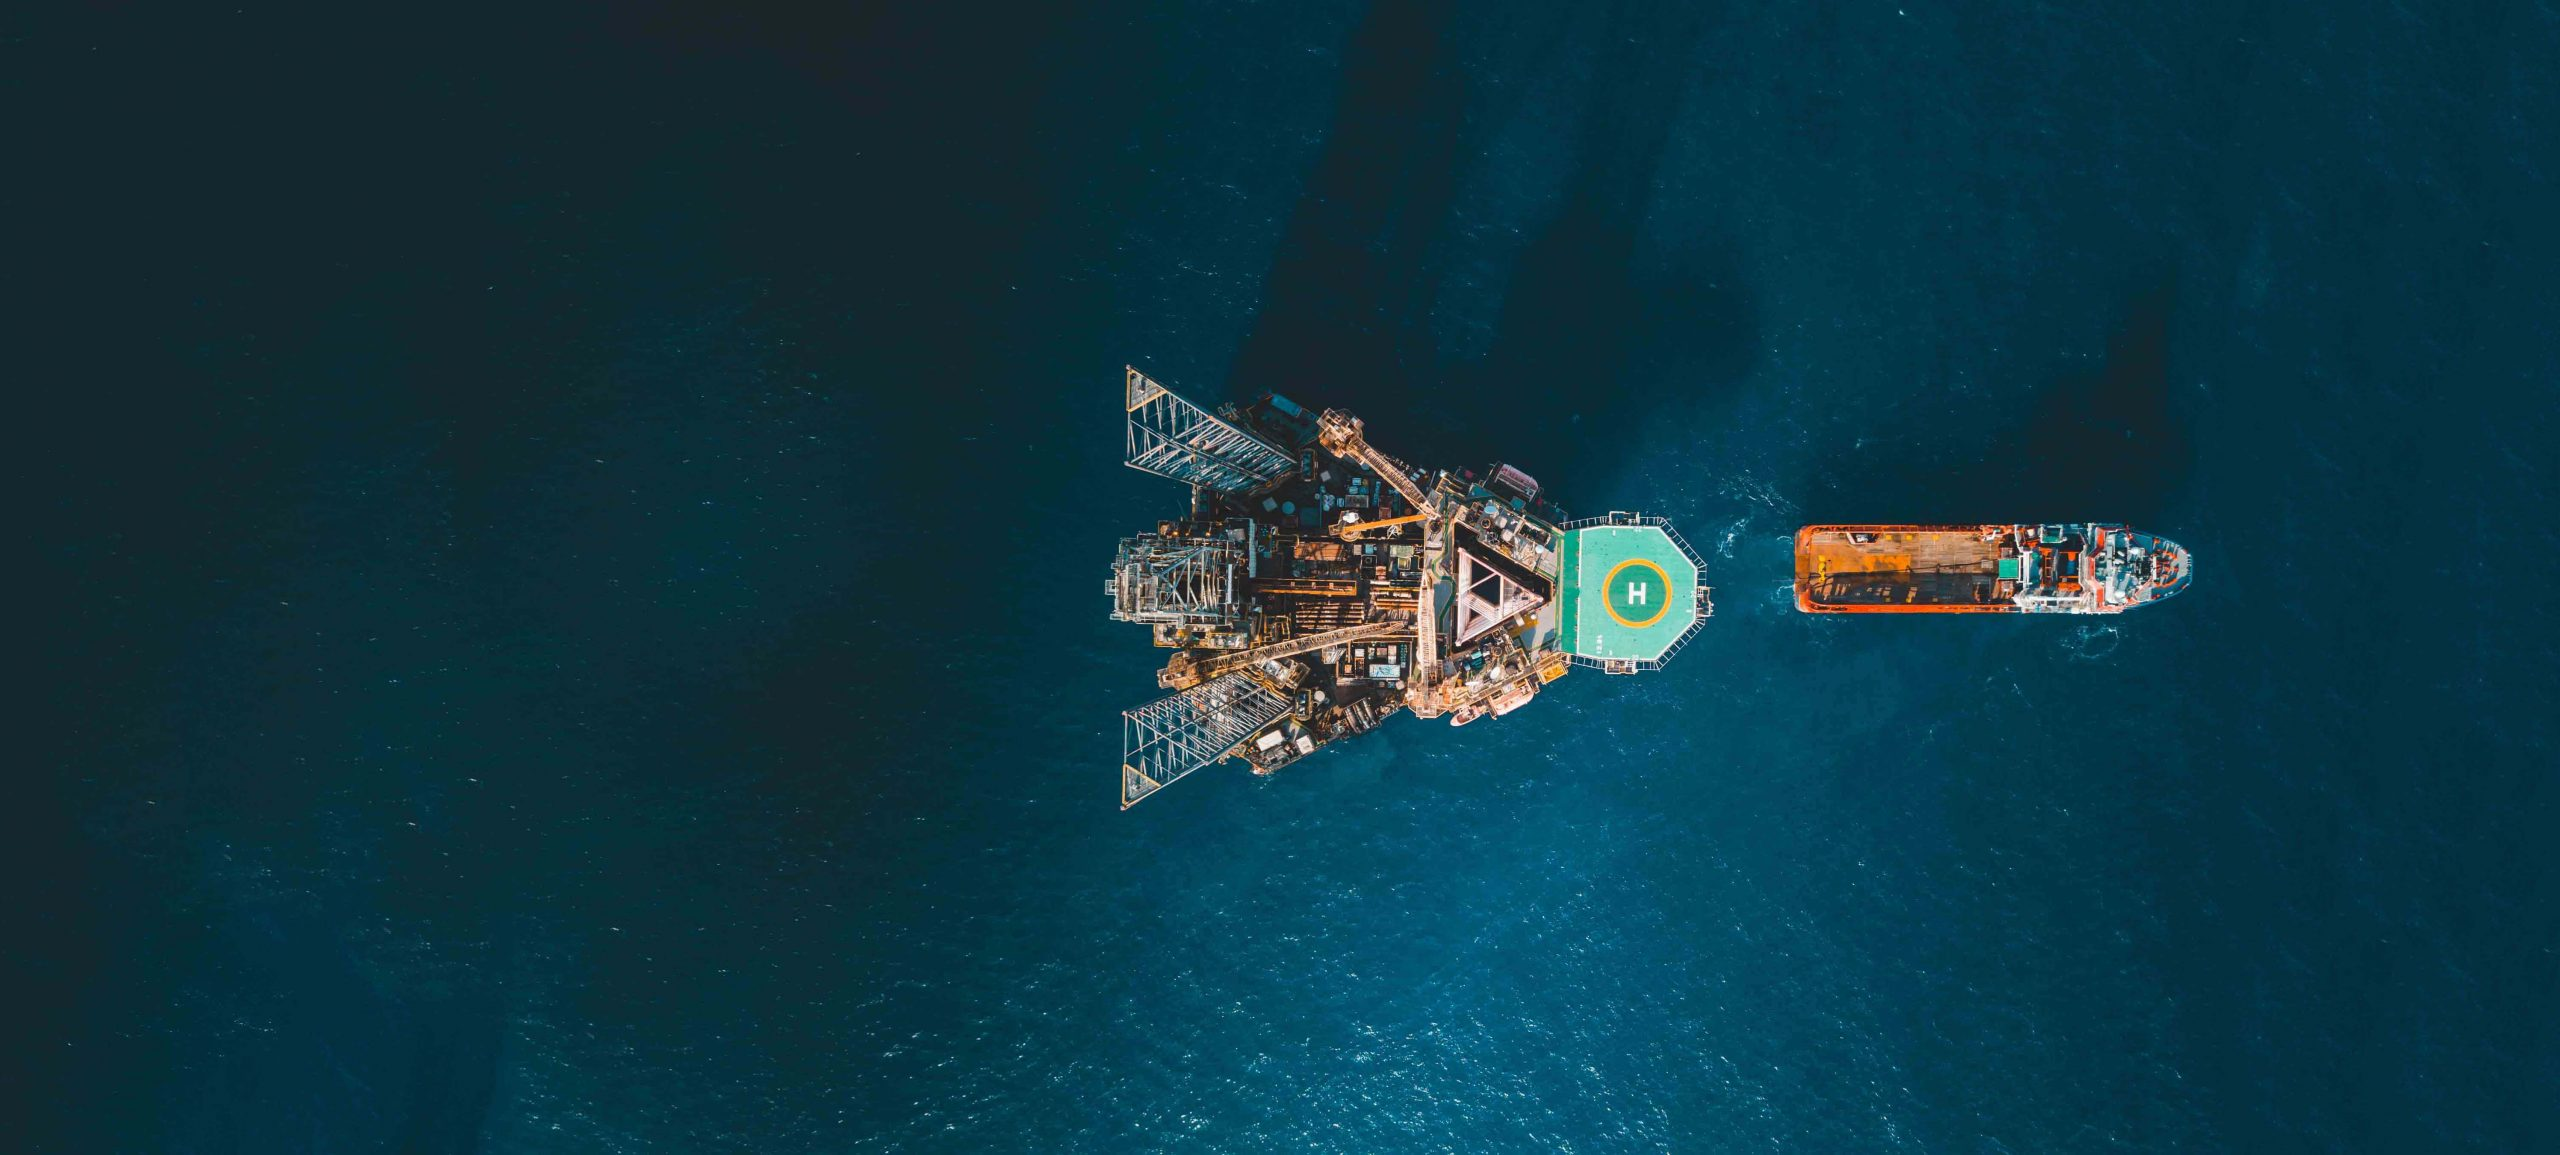 Bird's eye view of oil rig and orange boat in ocean